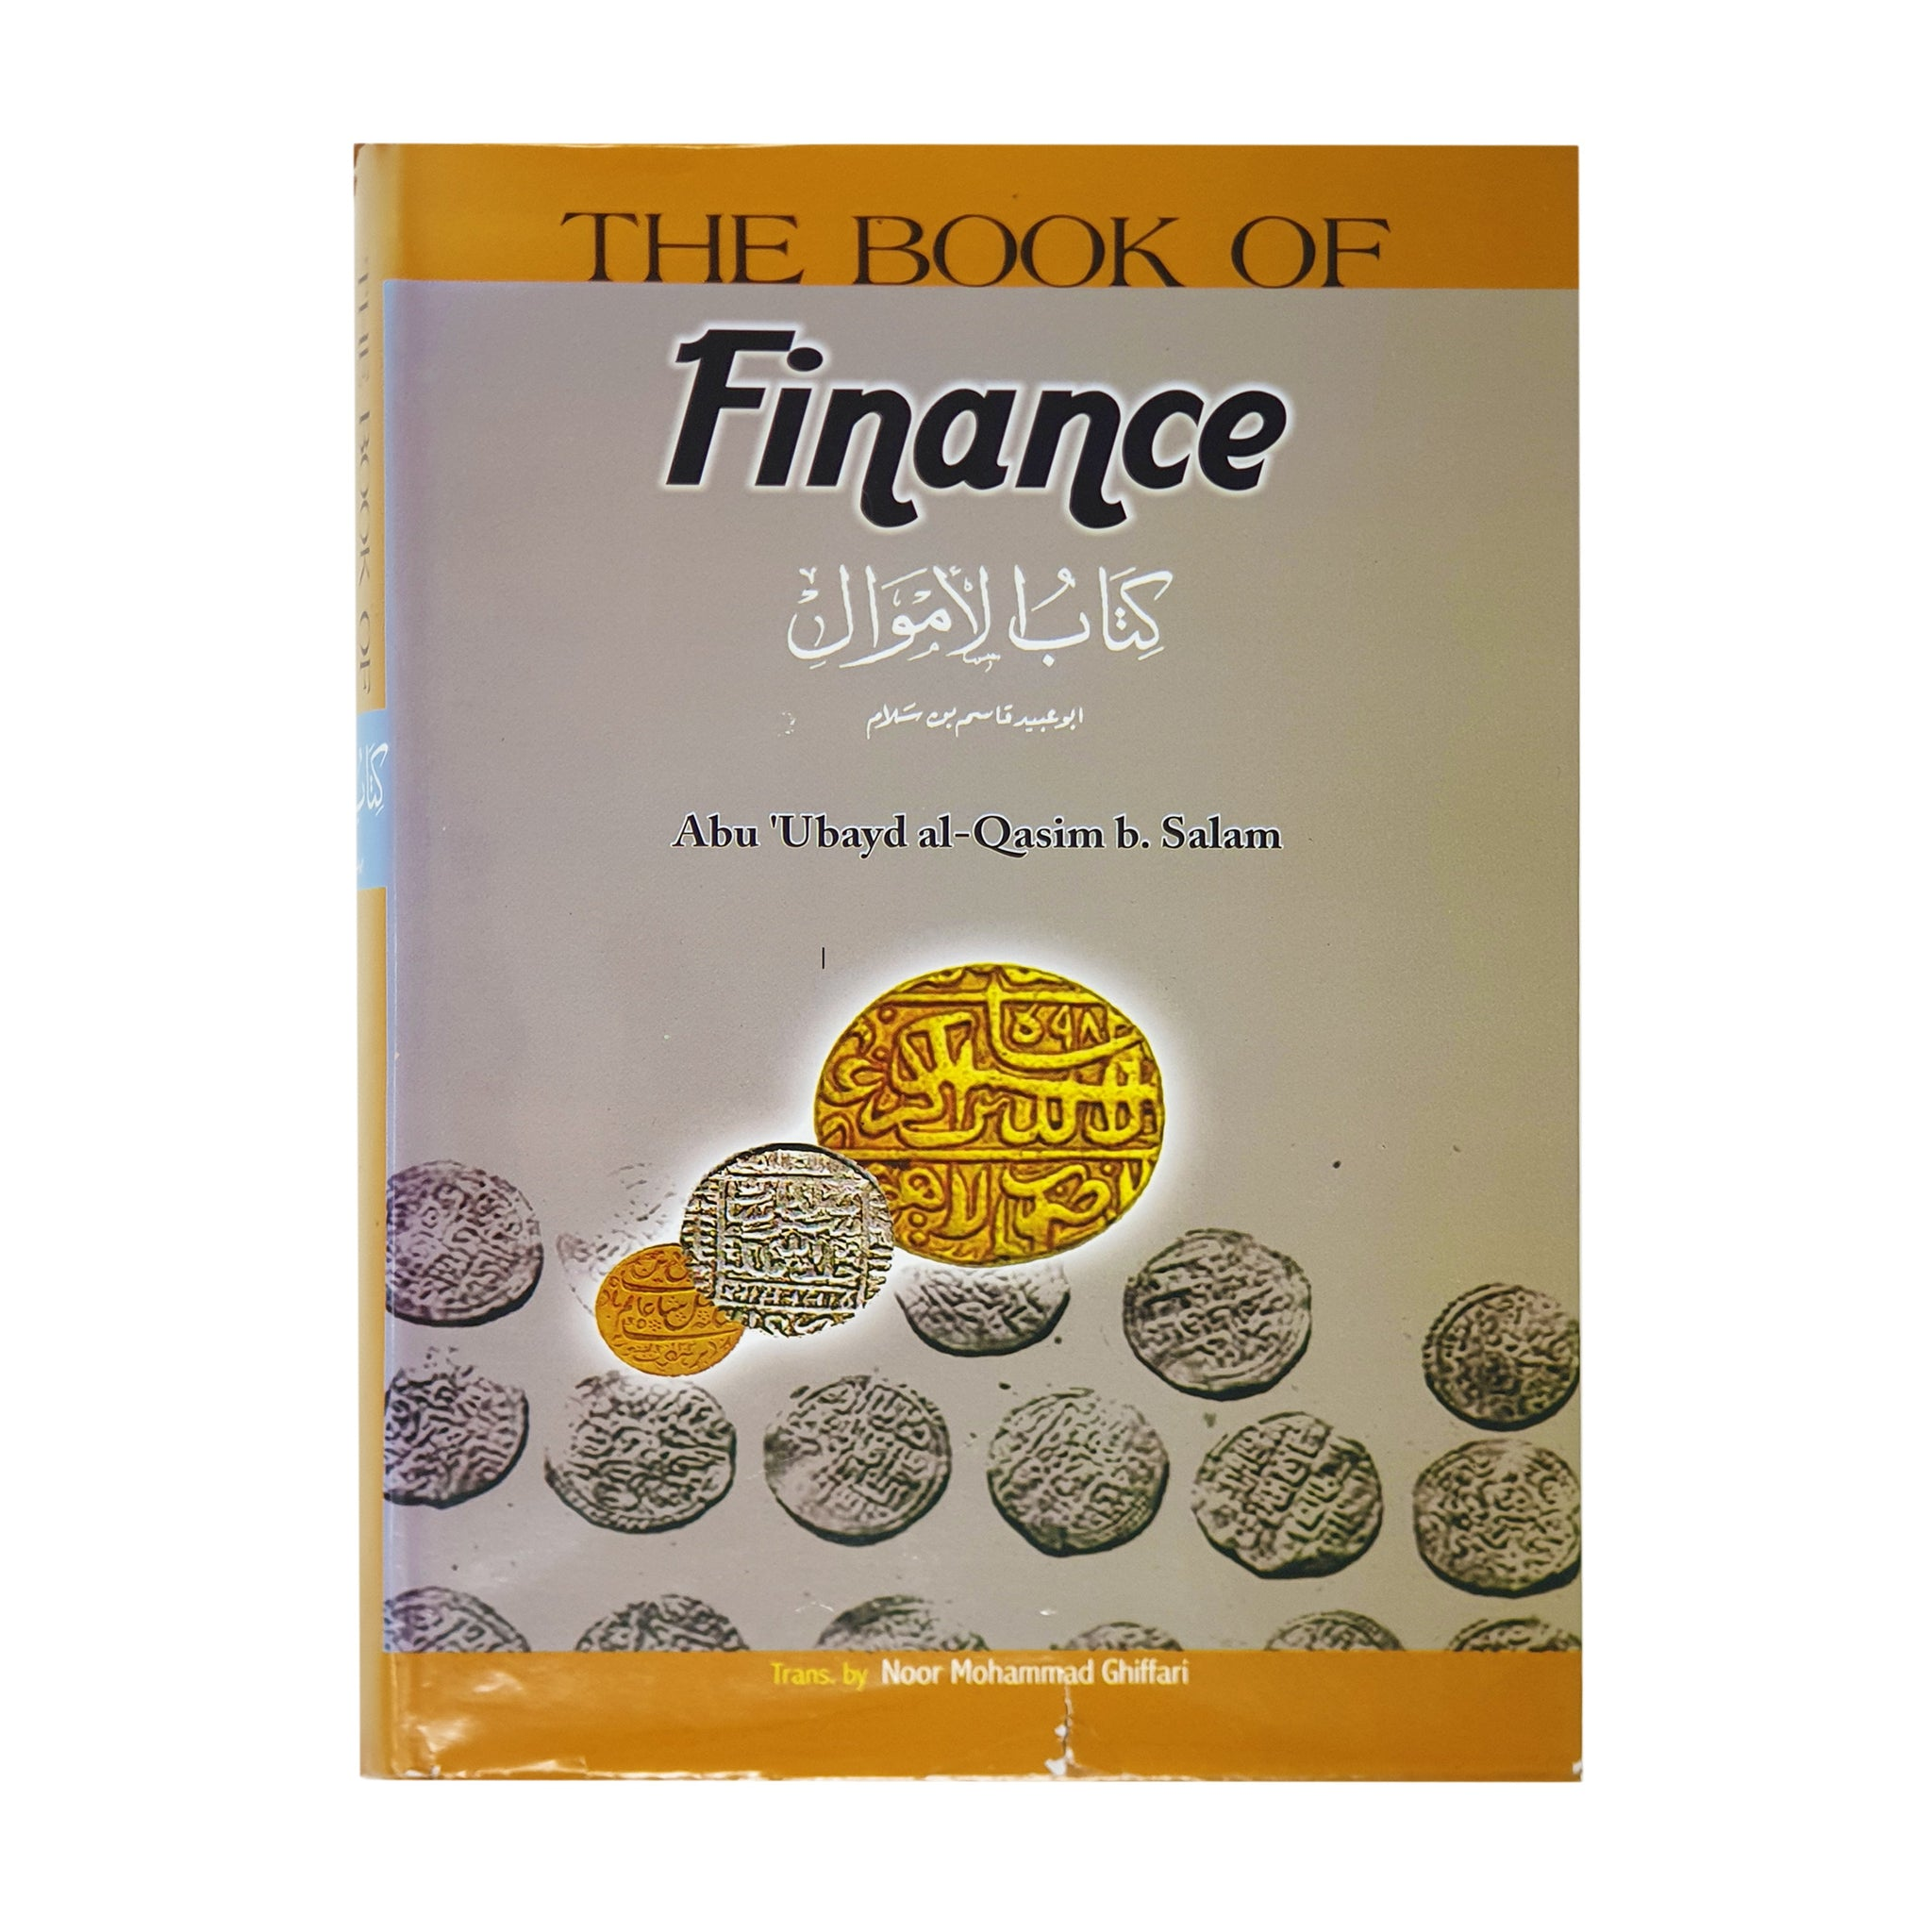 The Book Of Finance (Kitab al-Amwal)